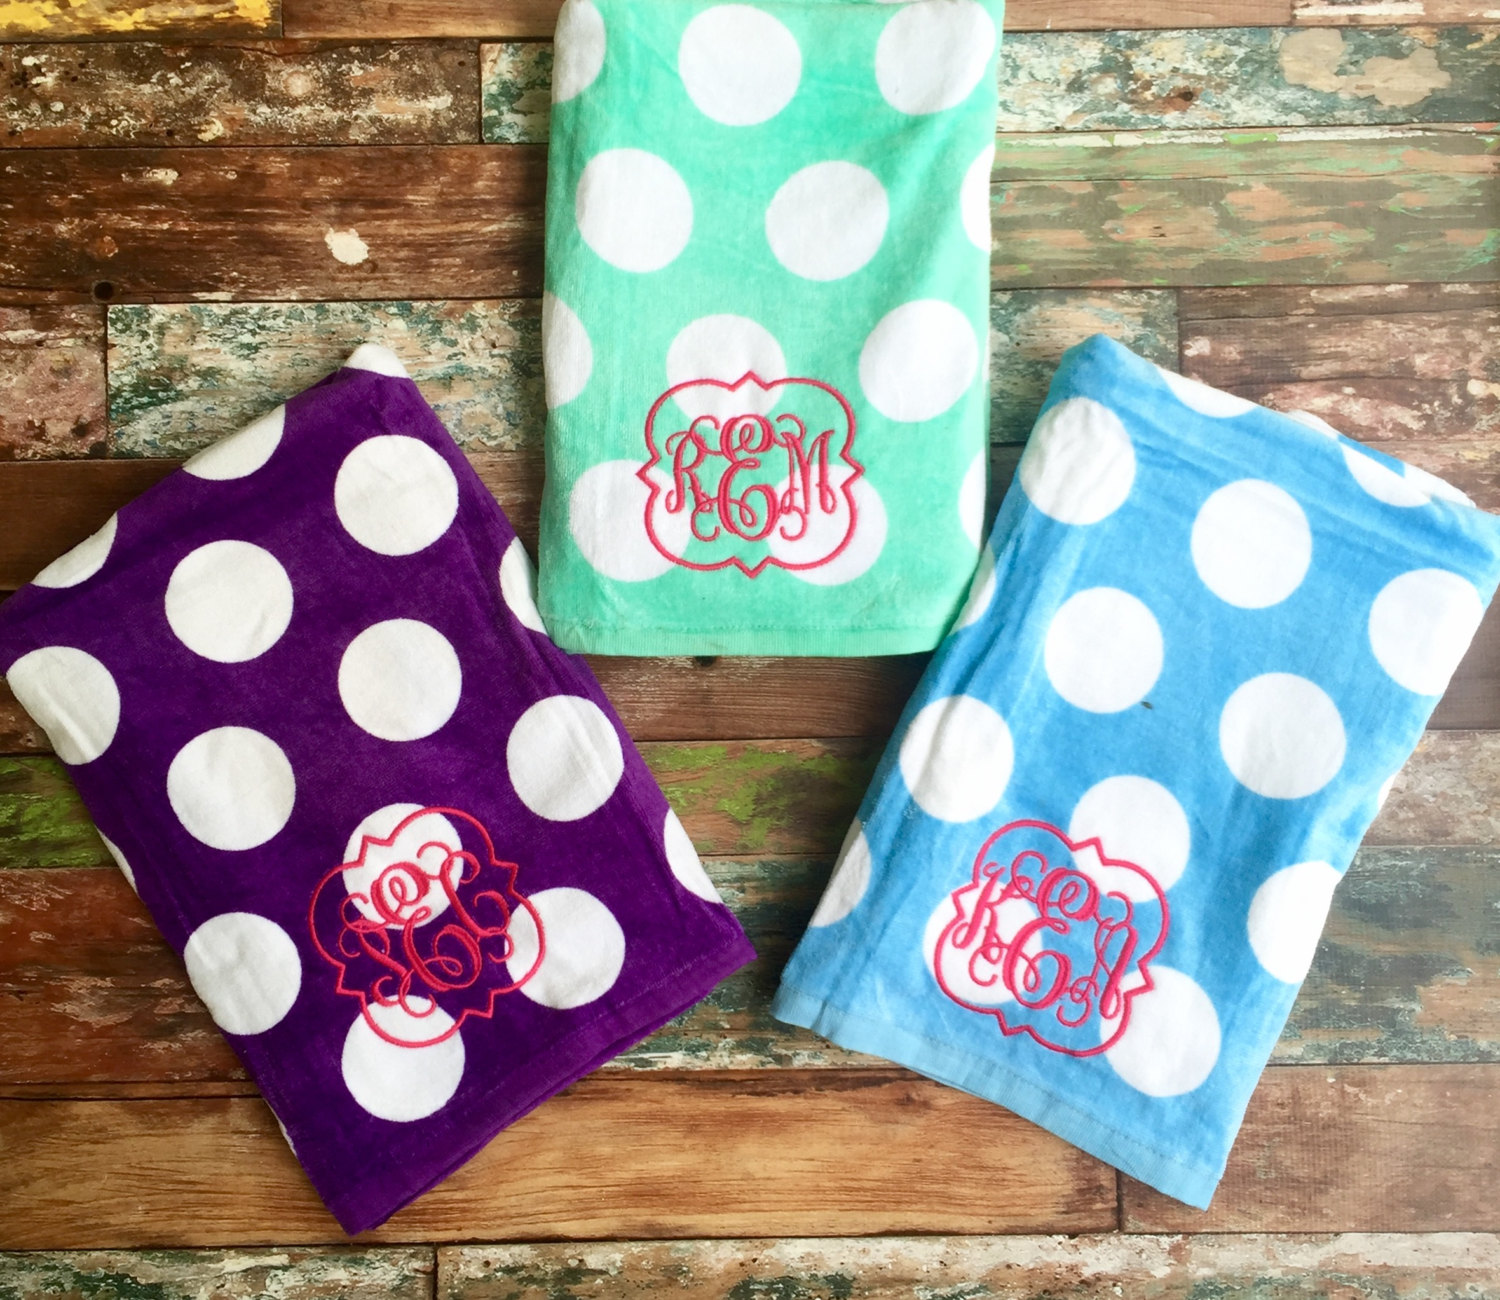 Cozy monogrammed hand towels with Decorative logo pattern towel for bathing Ideas